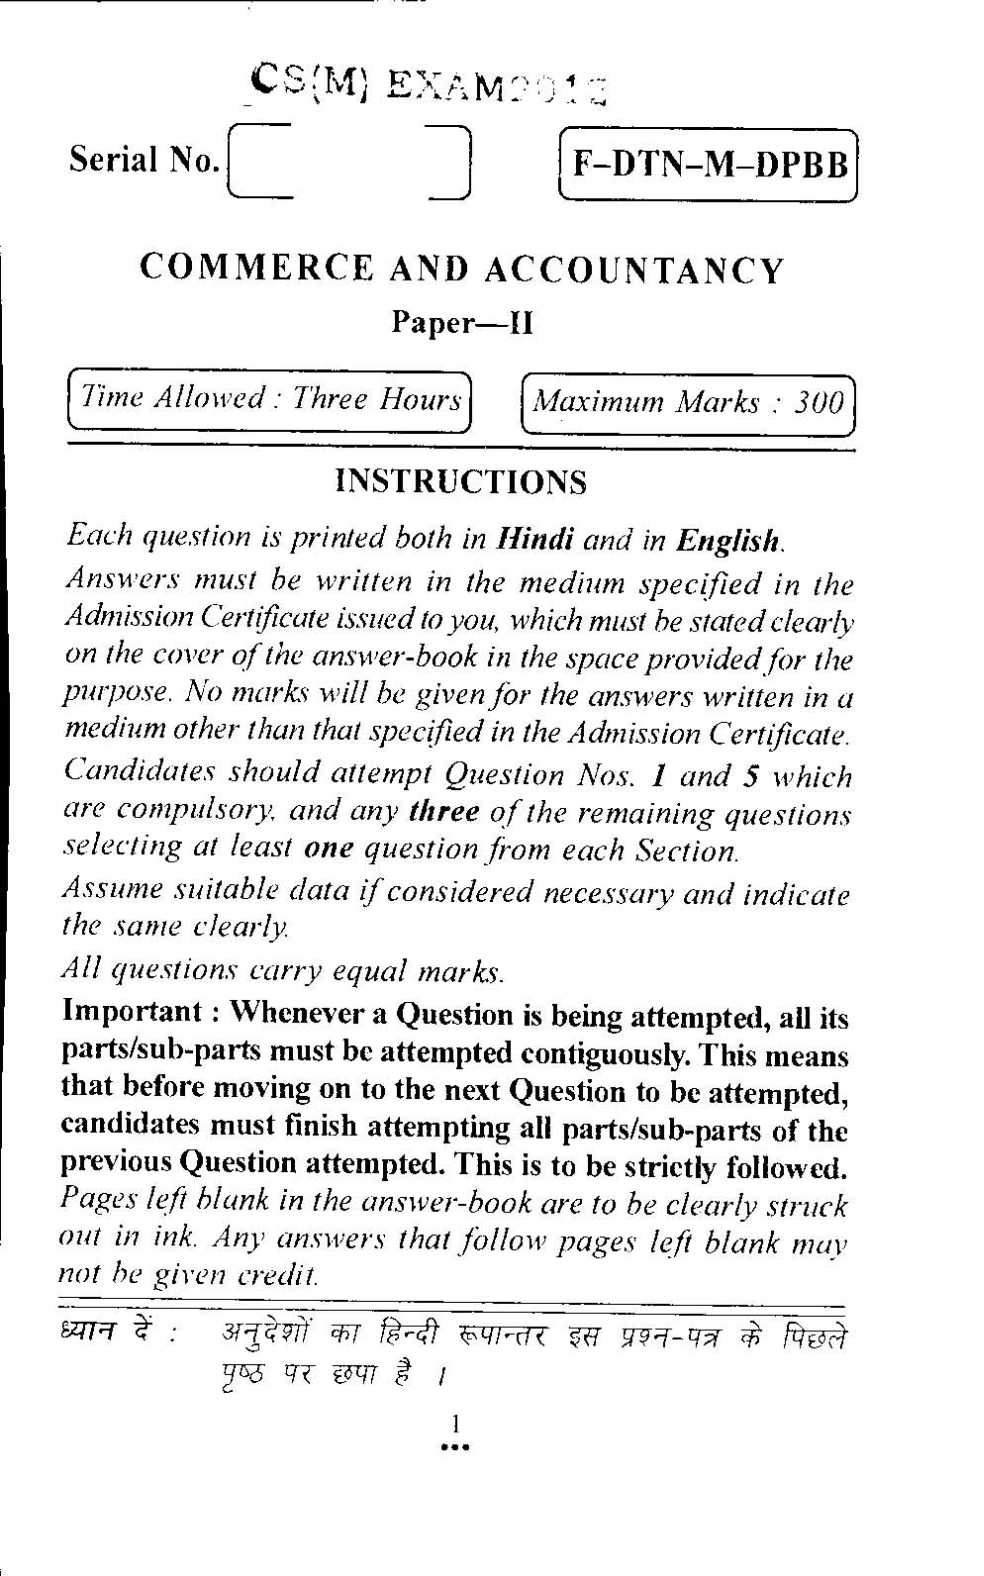 009 Essay Example Civil Services Examination Commerce And Accountancy Paper Ii Previous Years Que Racism Fantastic Argumentative Topics Examples In Sports Full